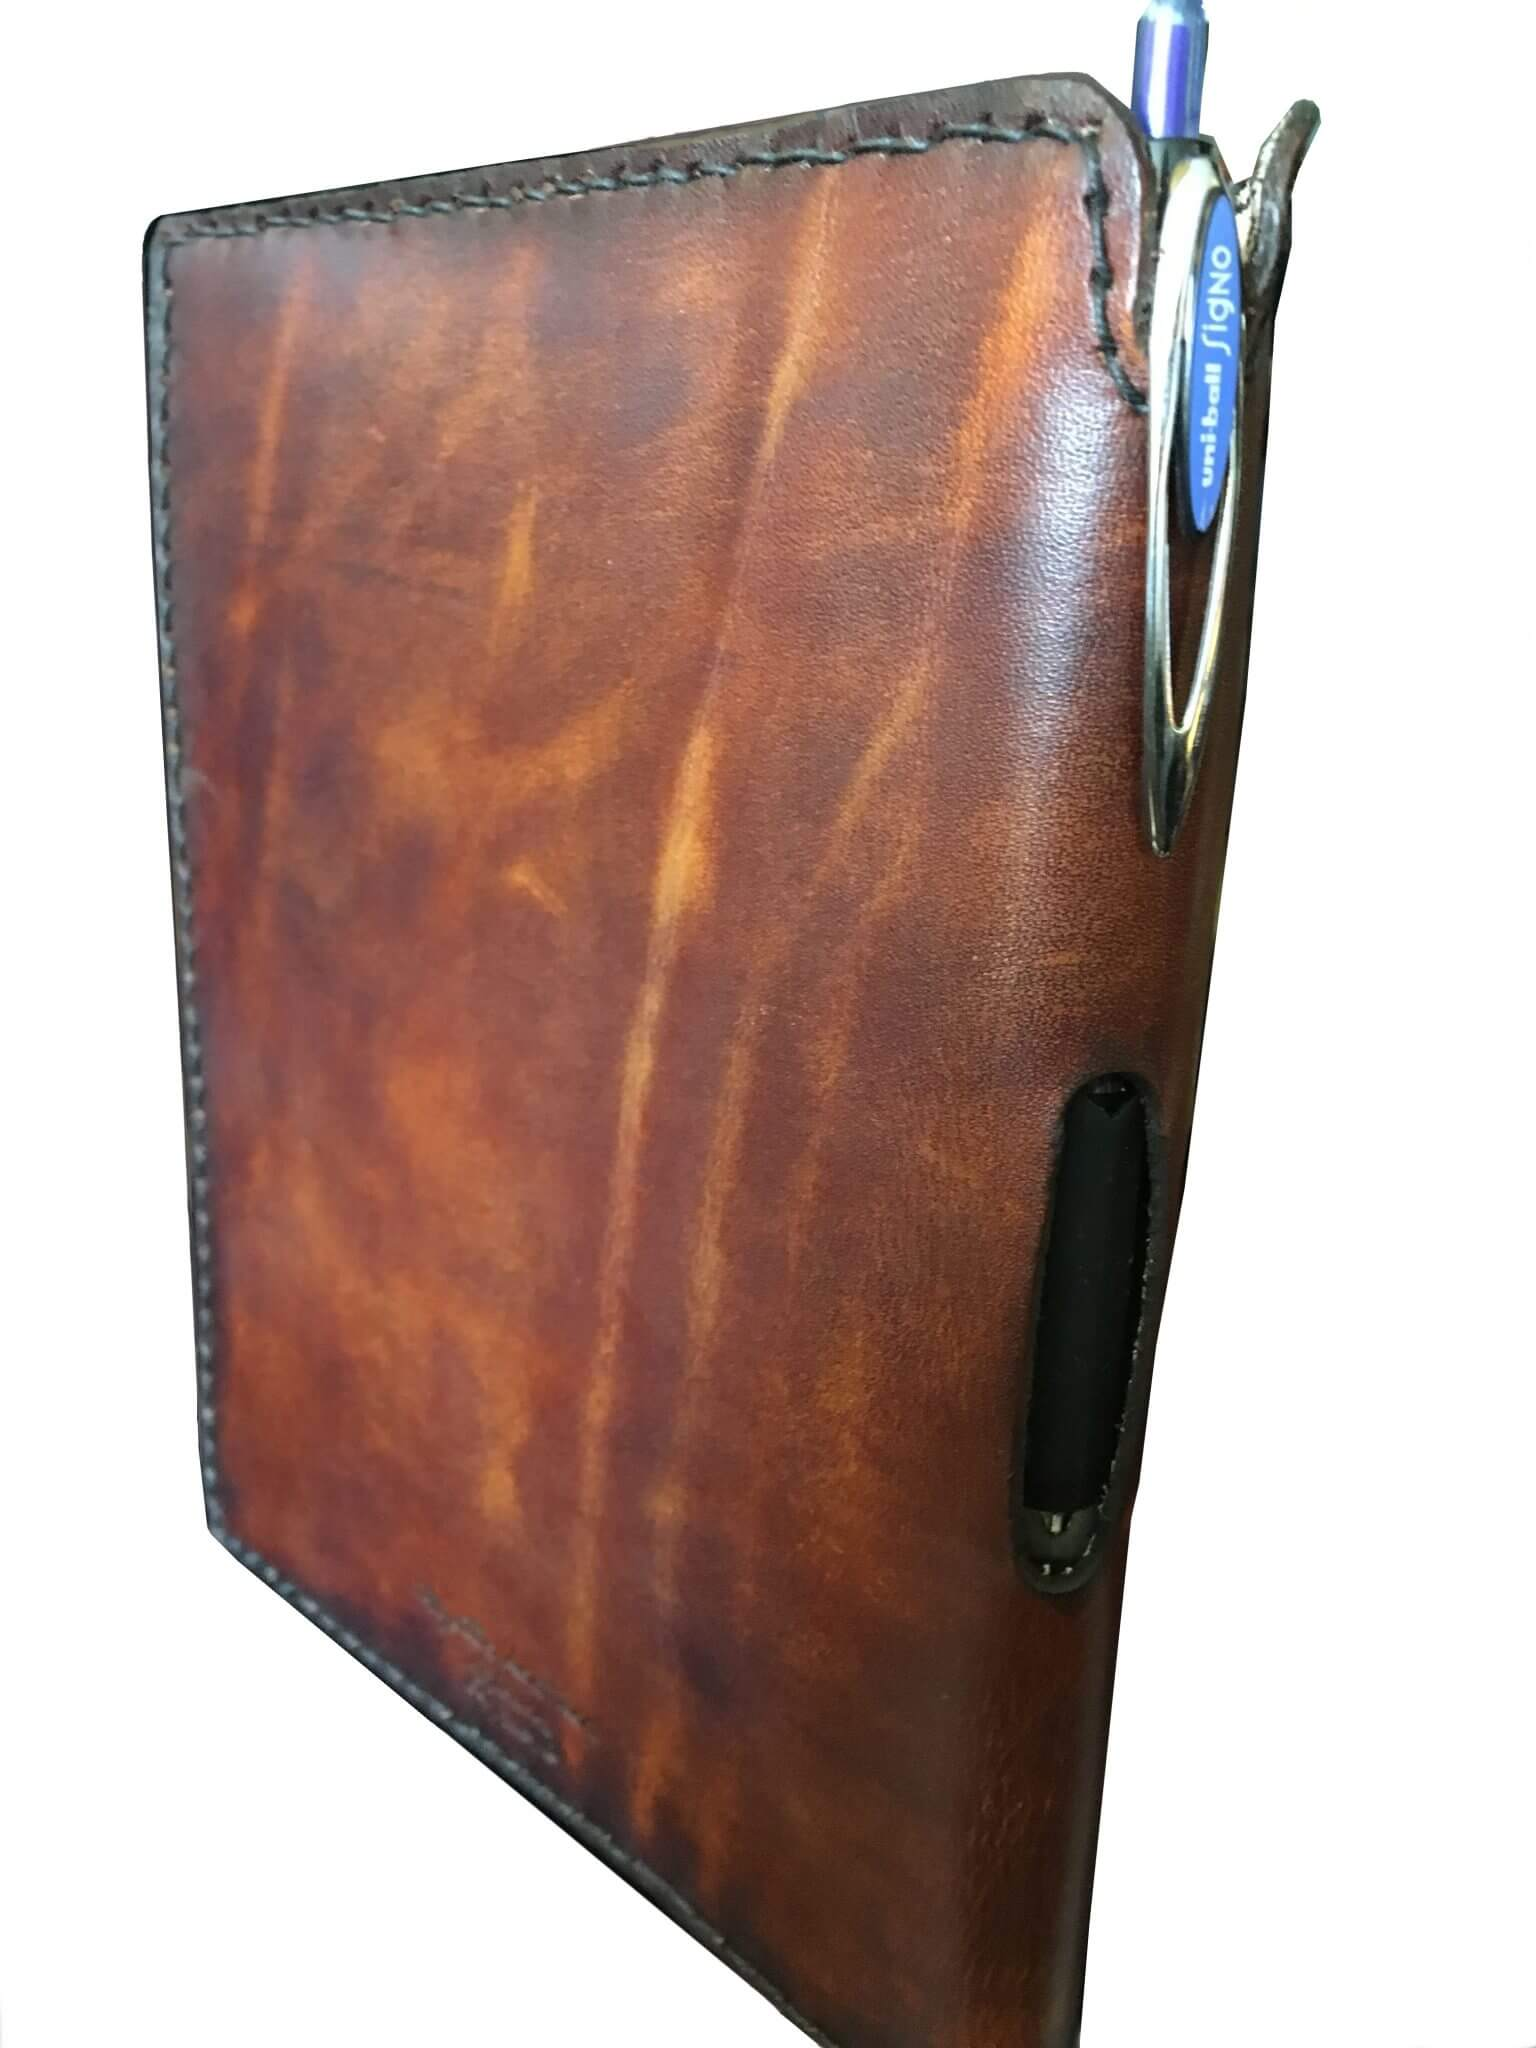 Journal with Pen Holder in Spine Spine View